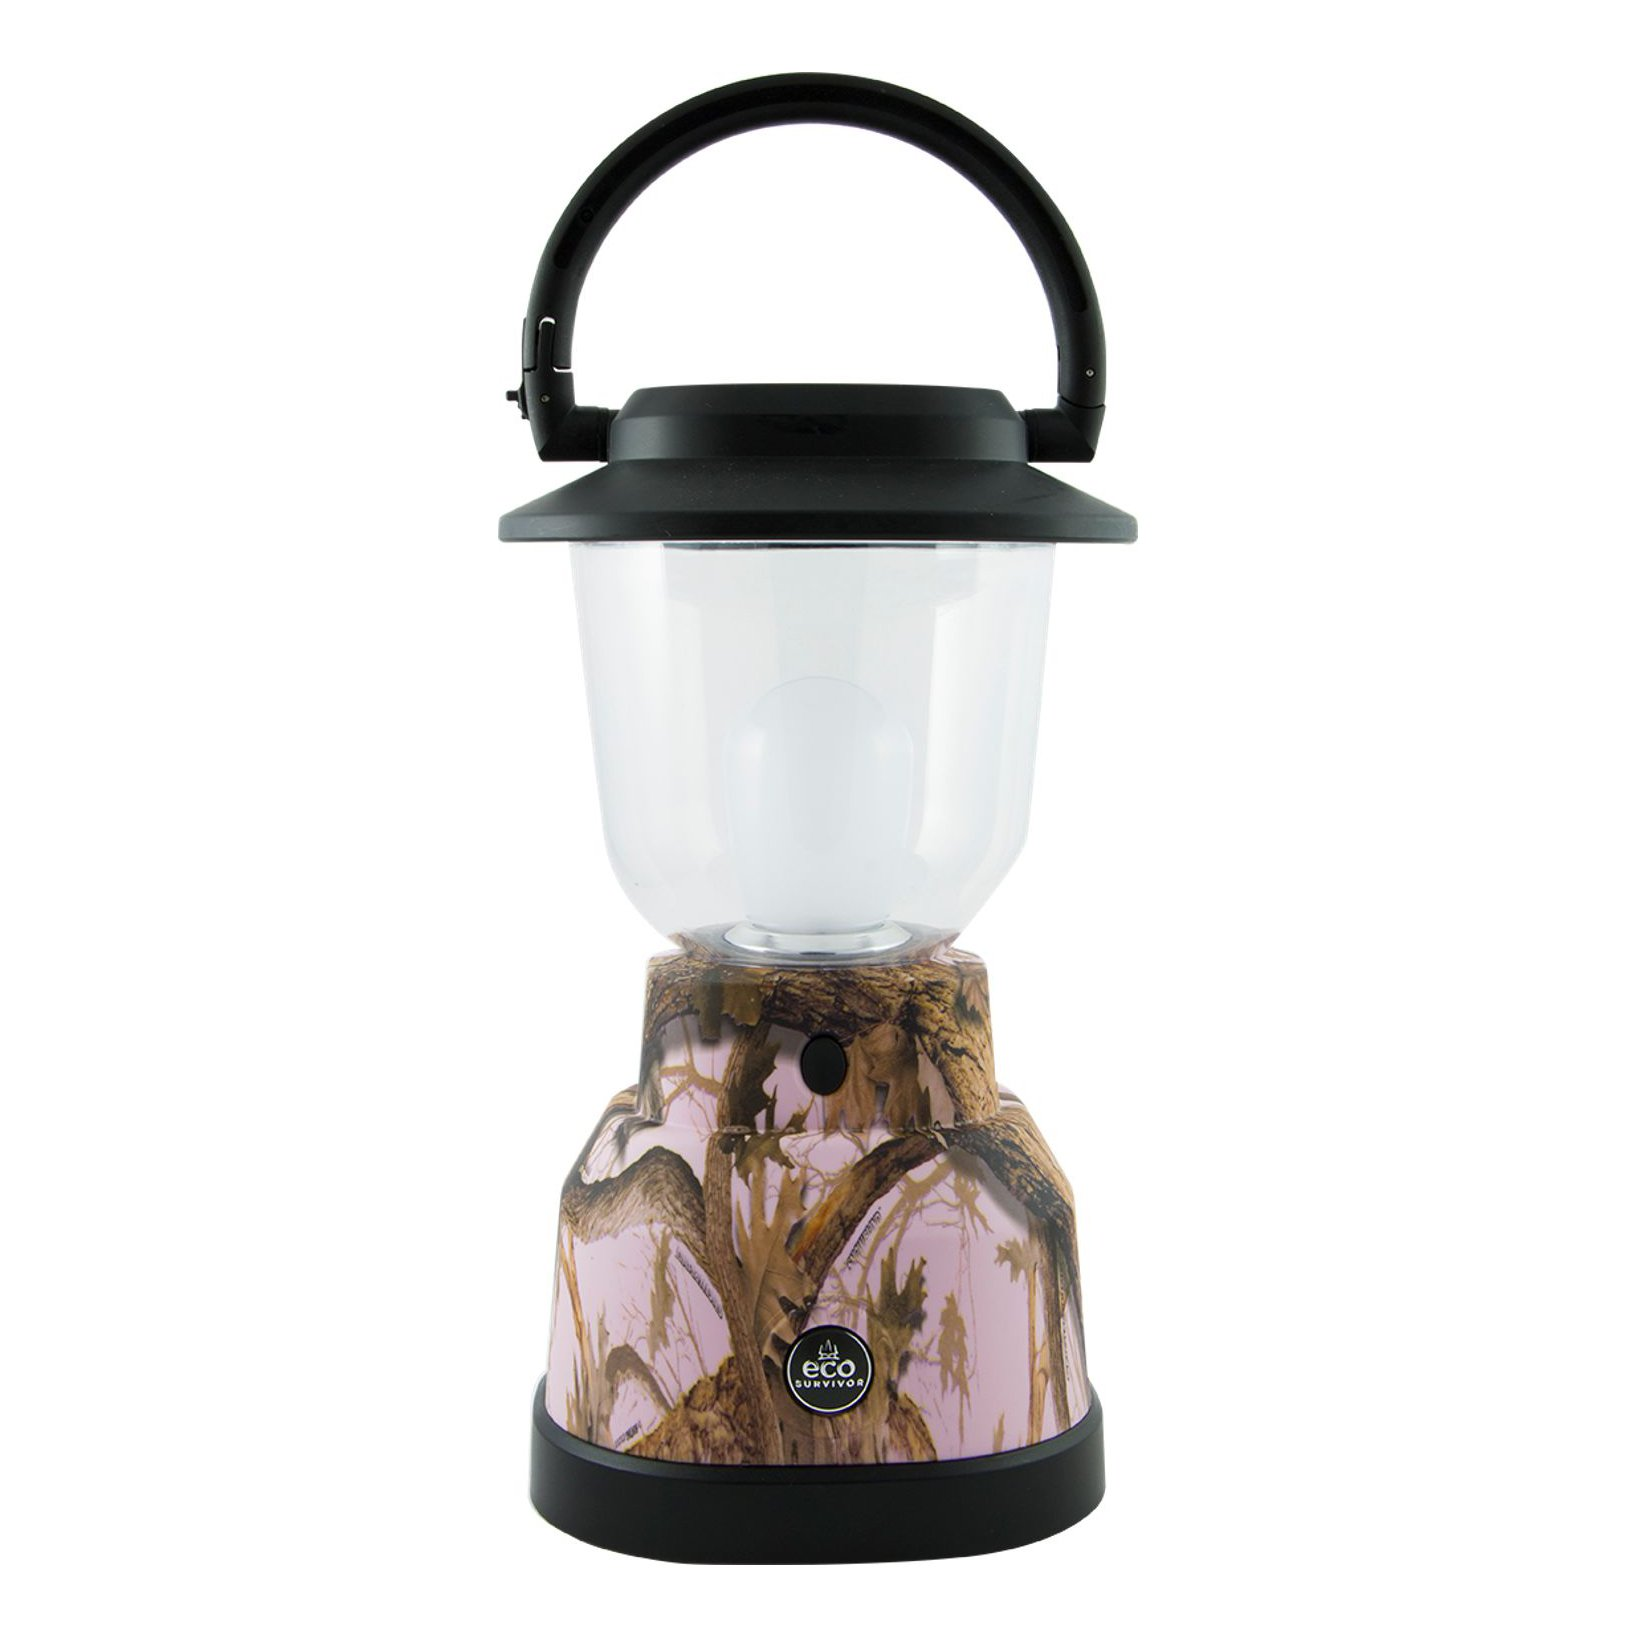 EcoSurvivor LED Lantern, Pink Camouflage, Outdoor, Waterproof, Lasts 180 Hours, Hanging Camping Lantern, Carabiner Handle, Great for Hiking, Storms, and Emergencies, 50% Charity Give Back, 11238 by EcoSurvivor